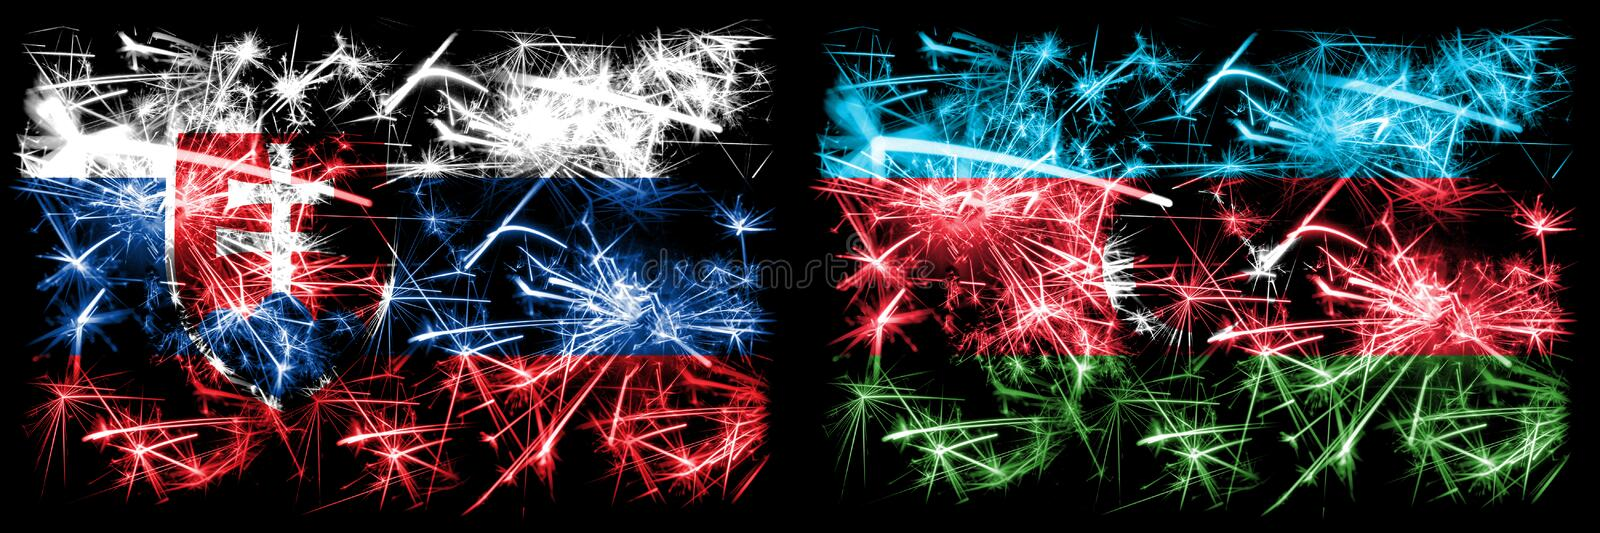 Slovakia, Slovakian, Azerbaijan sparkling fireworks concept and idea flags royalty free illustration